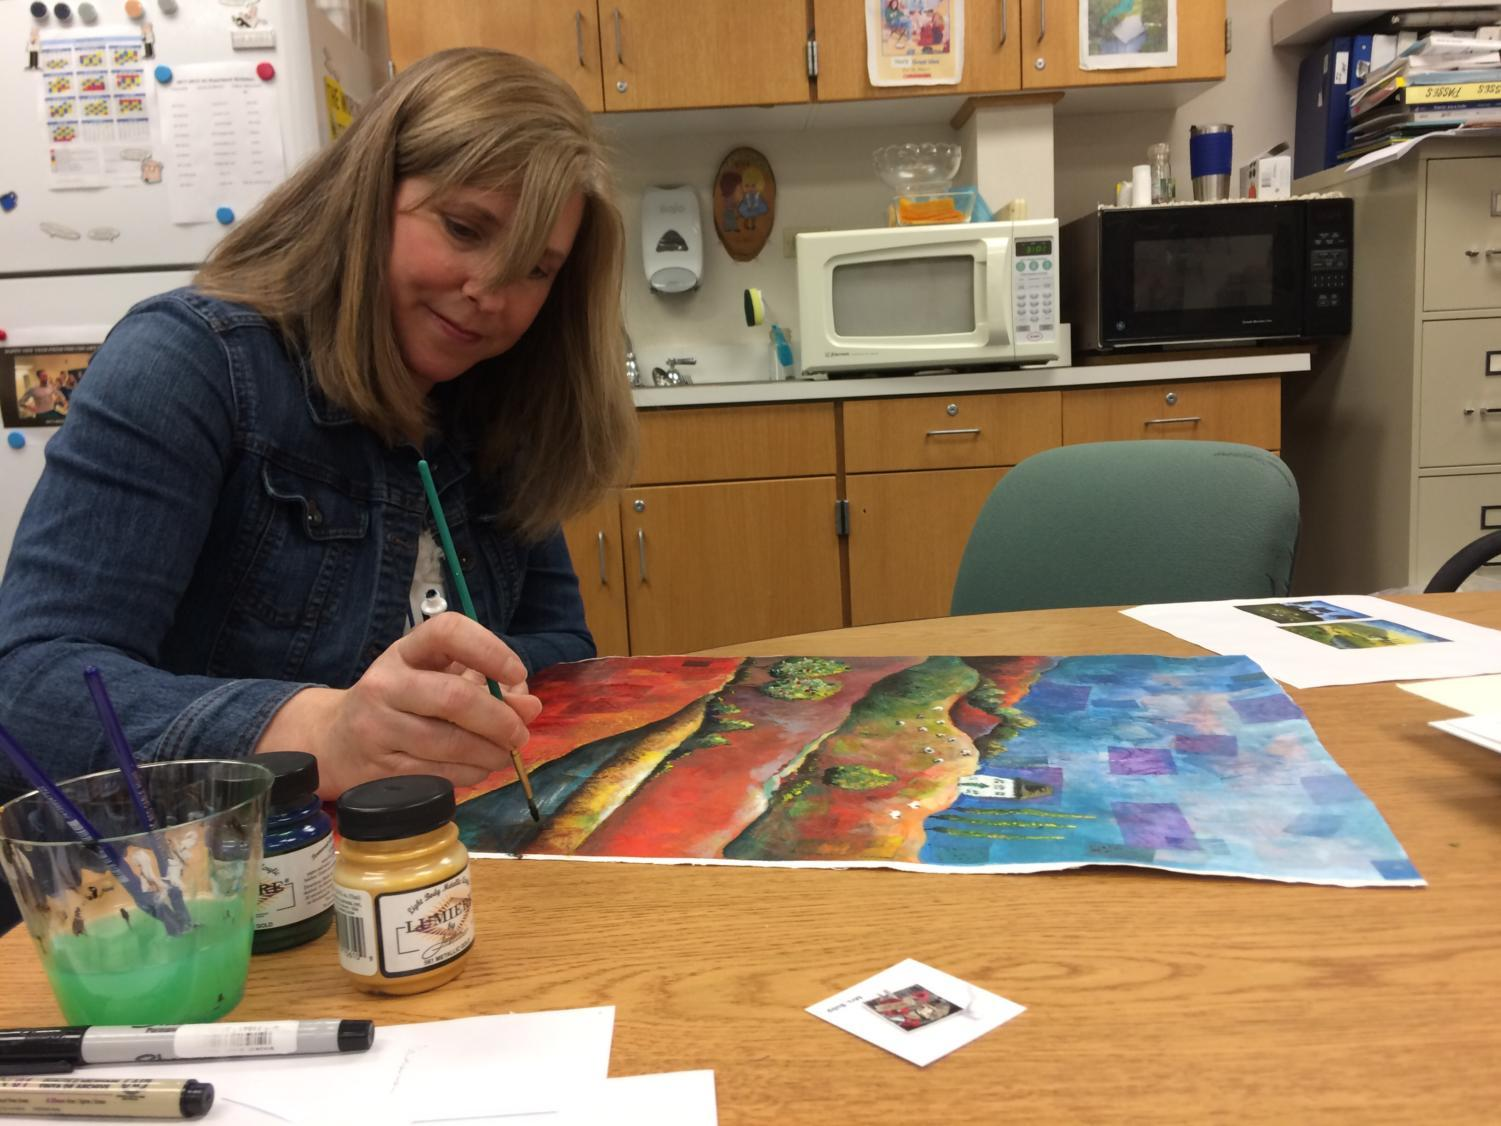 National Art Honor Society (NAHS) sponsor Jennifer Bubp finishes a painting for an art show at Soho Cafe, which took place on March 1. NAHS will host an event on March 29 to raise money for charity.